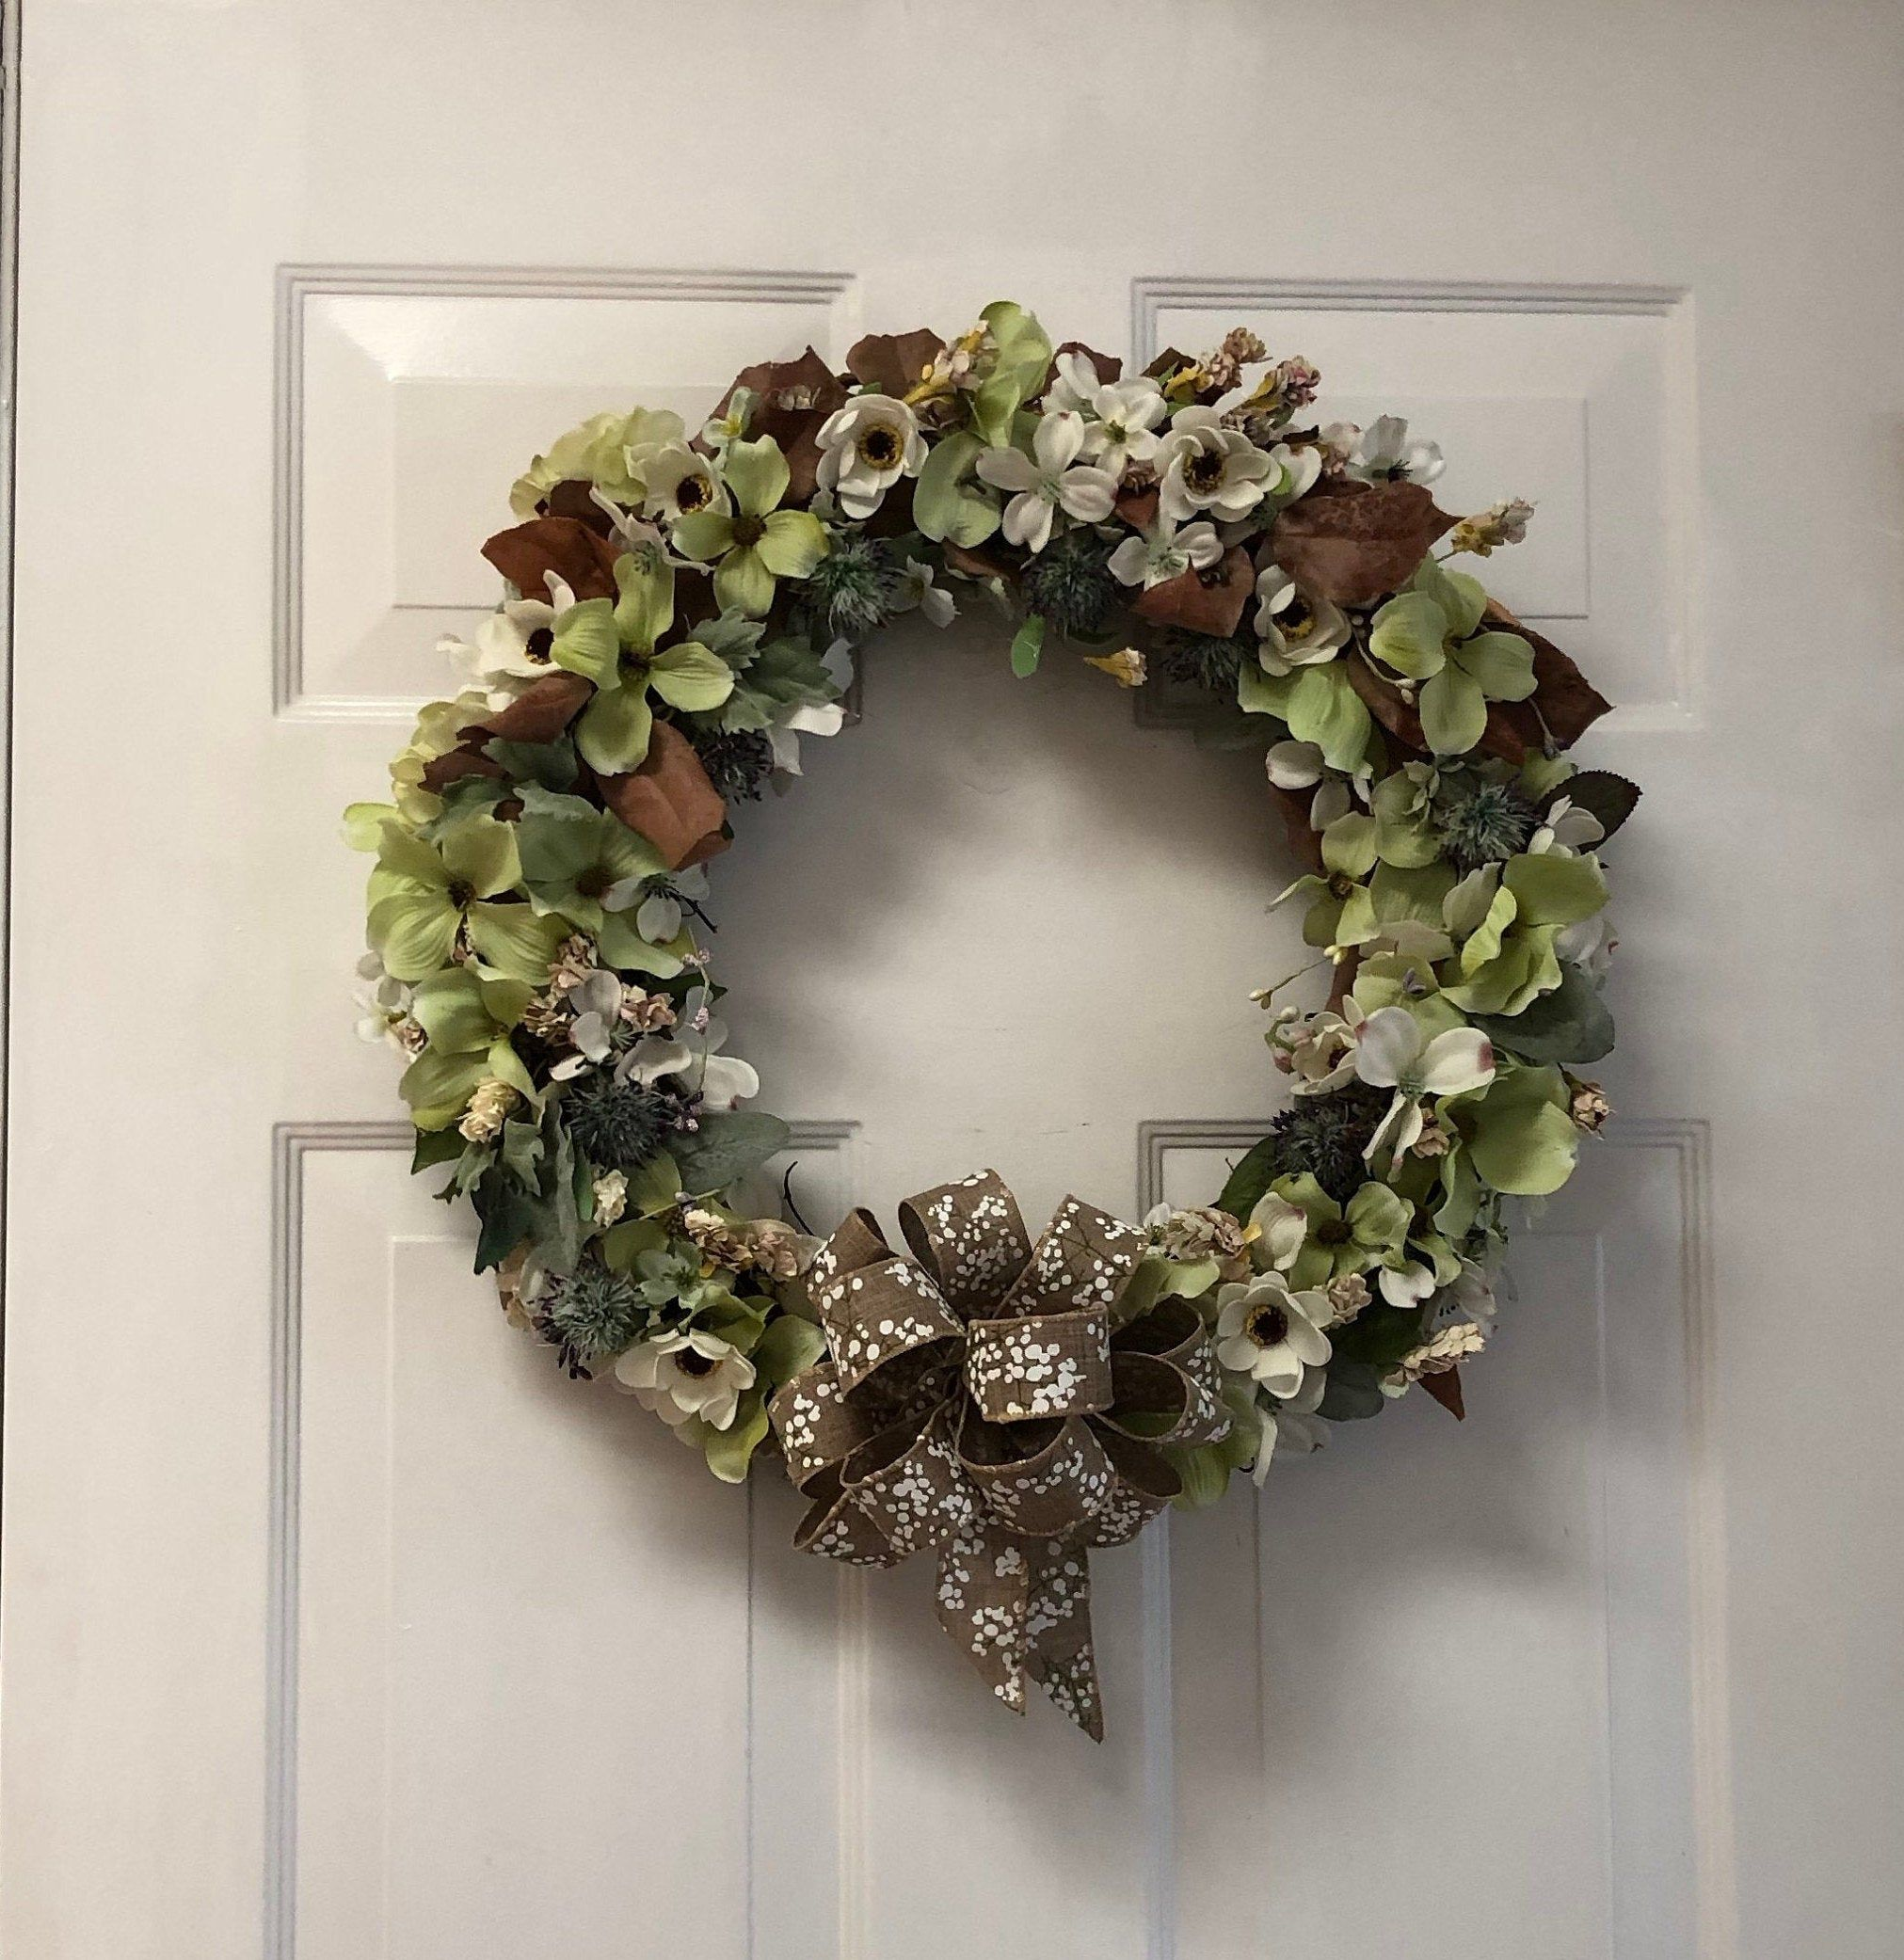 Magnolia Autumn Wreath | Fall Wreath | 24 Inch Front Door Wreath | Wreath With Green and White Magnolia Flowers | Summer Wreath | Burlap Bow #fallwreaths